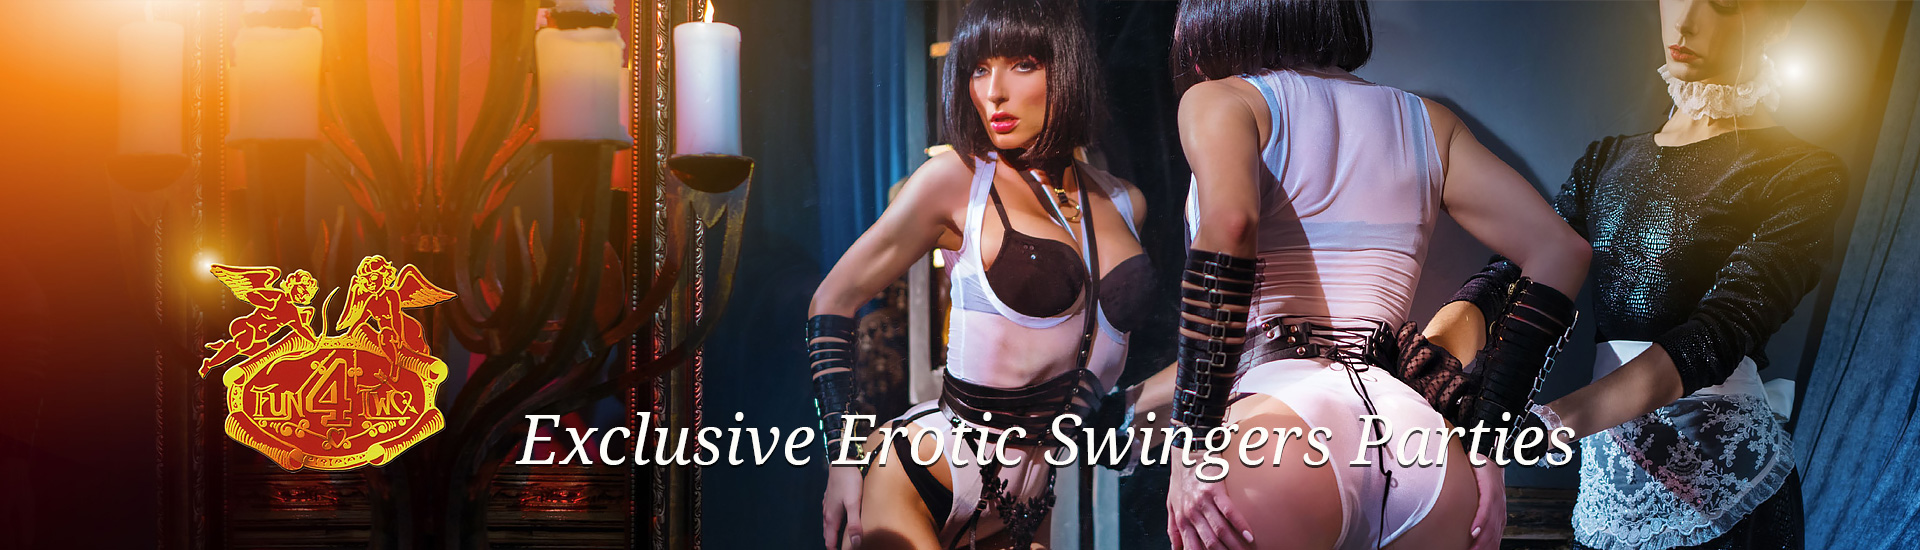 swingers club holland